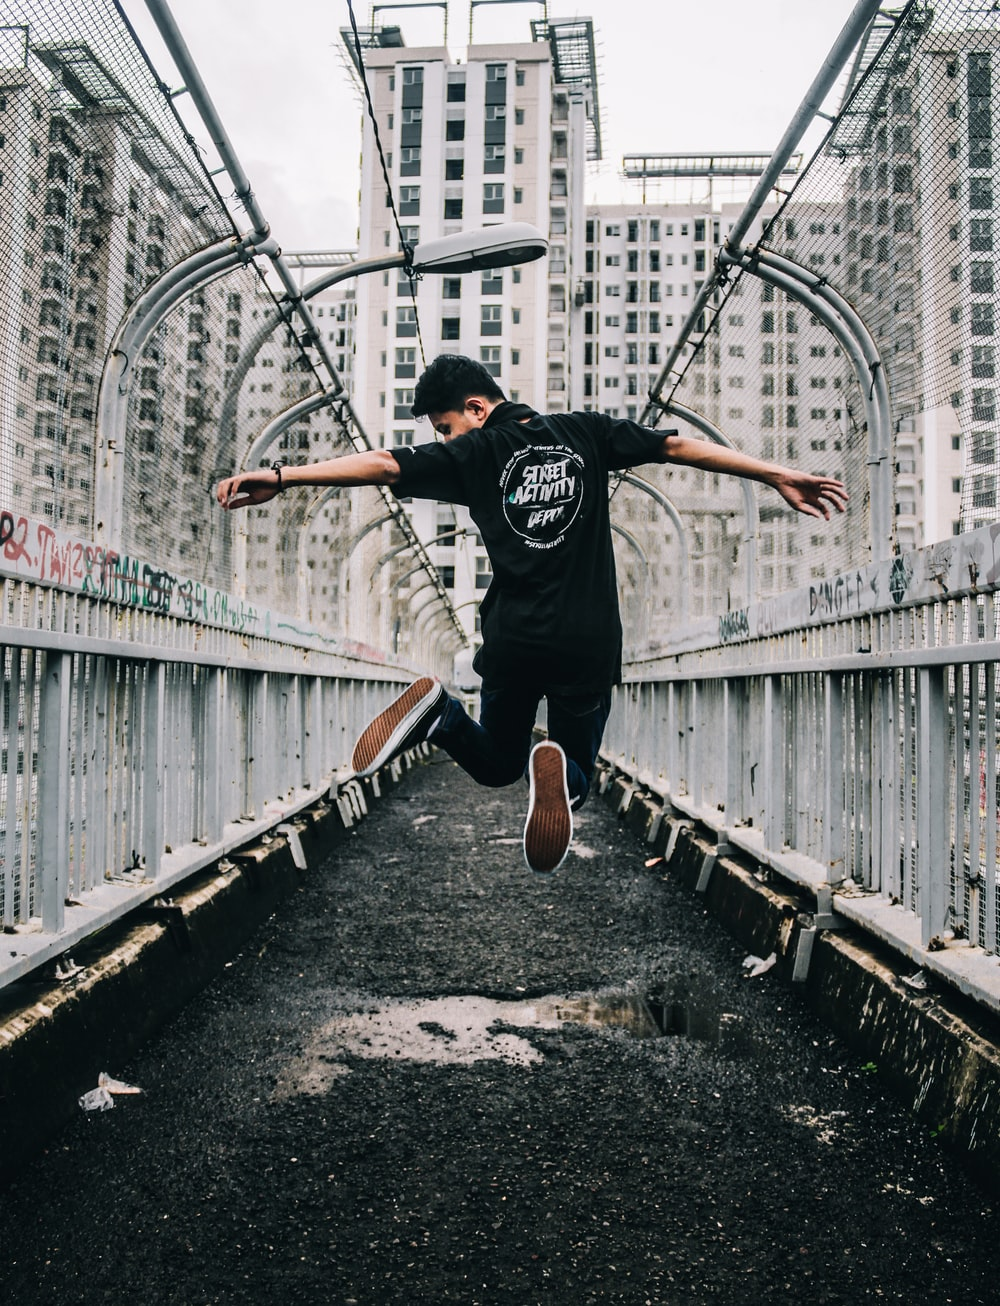 man jumping on pathway surrounded by buildings during daytime